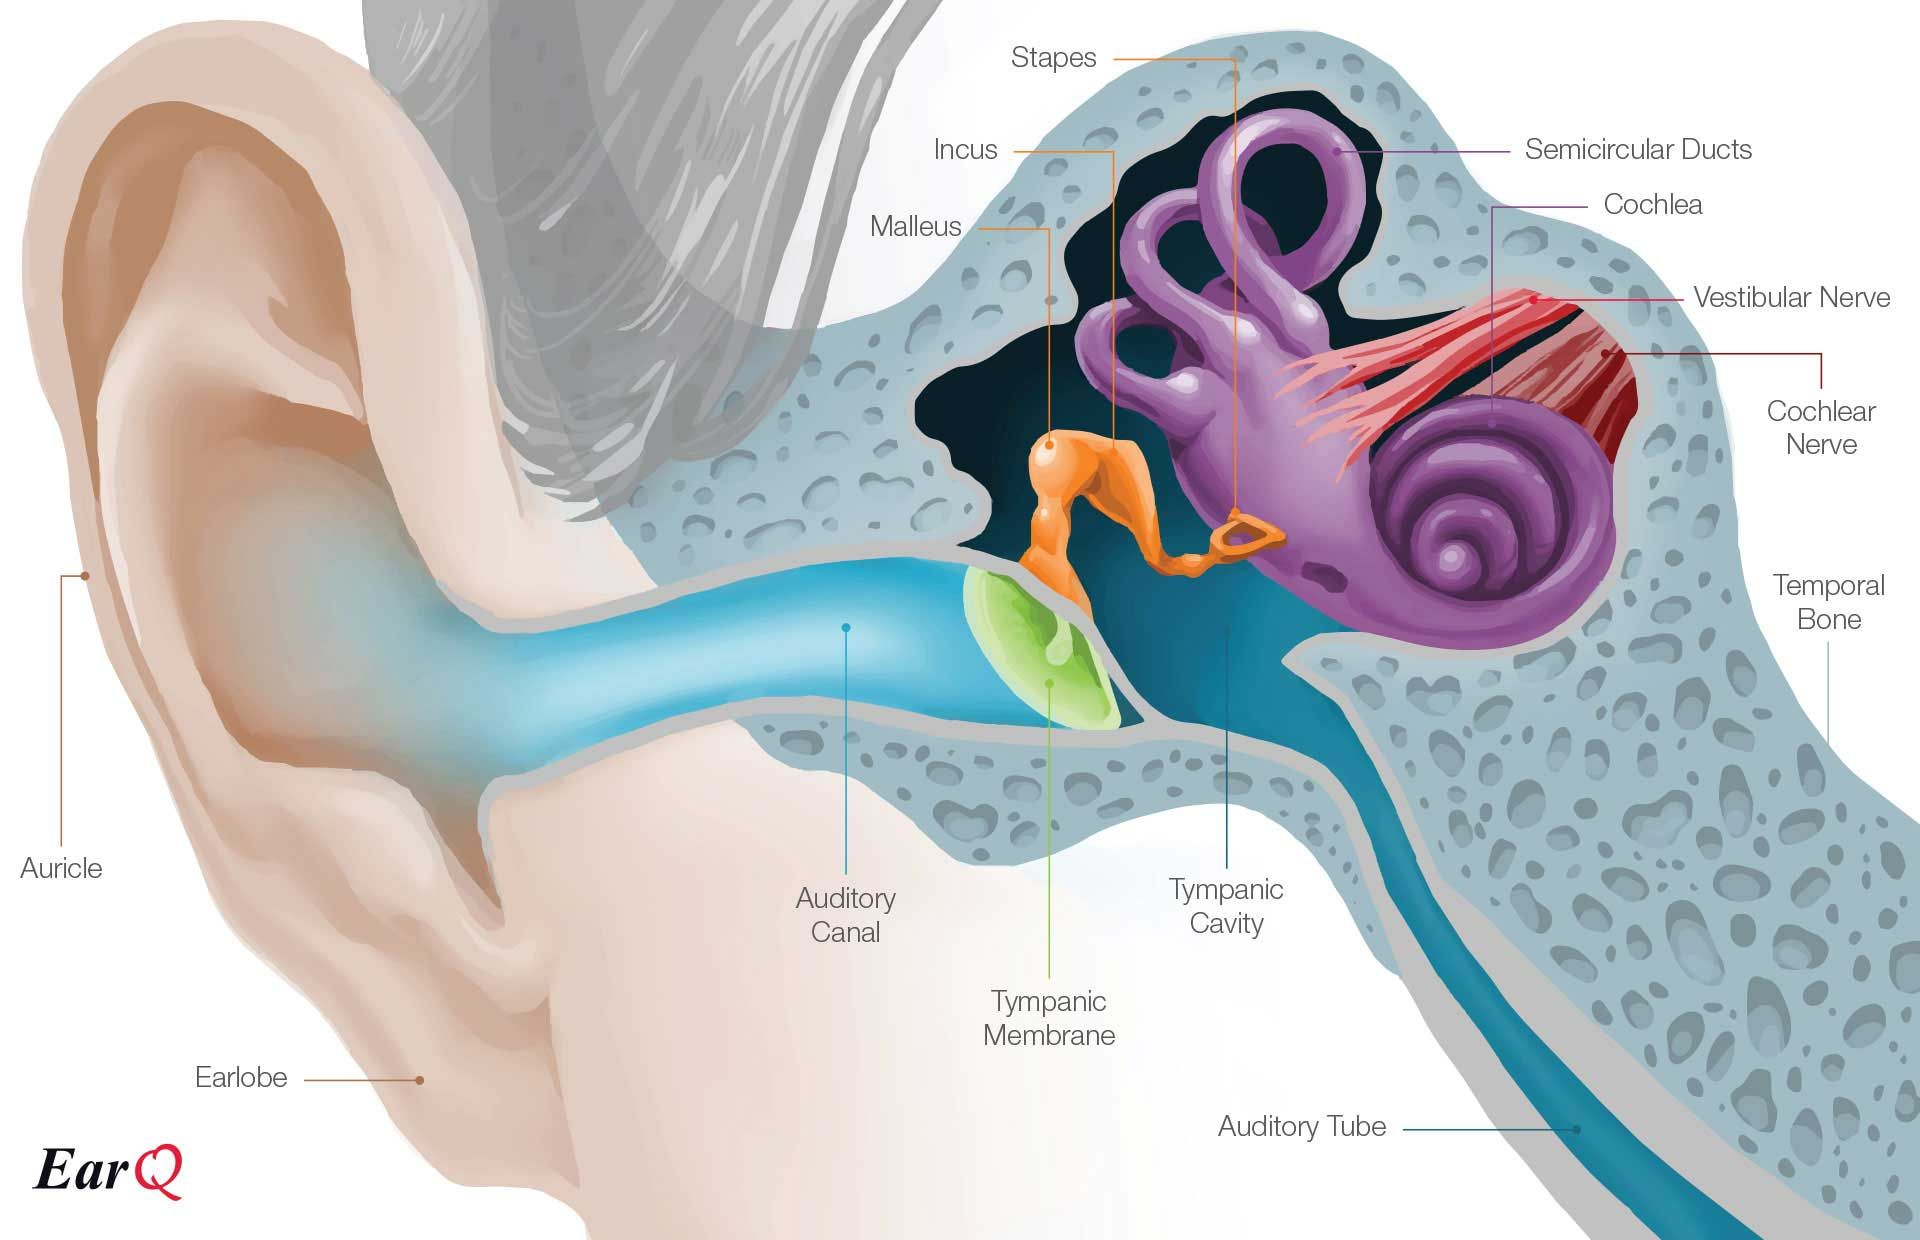 Earq Anatomy Of The Ear Chart With Images